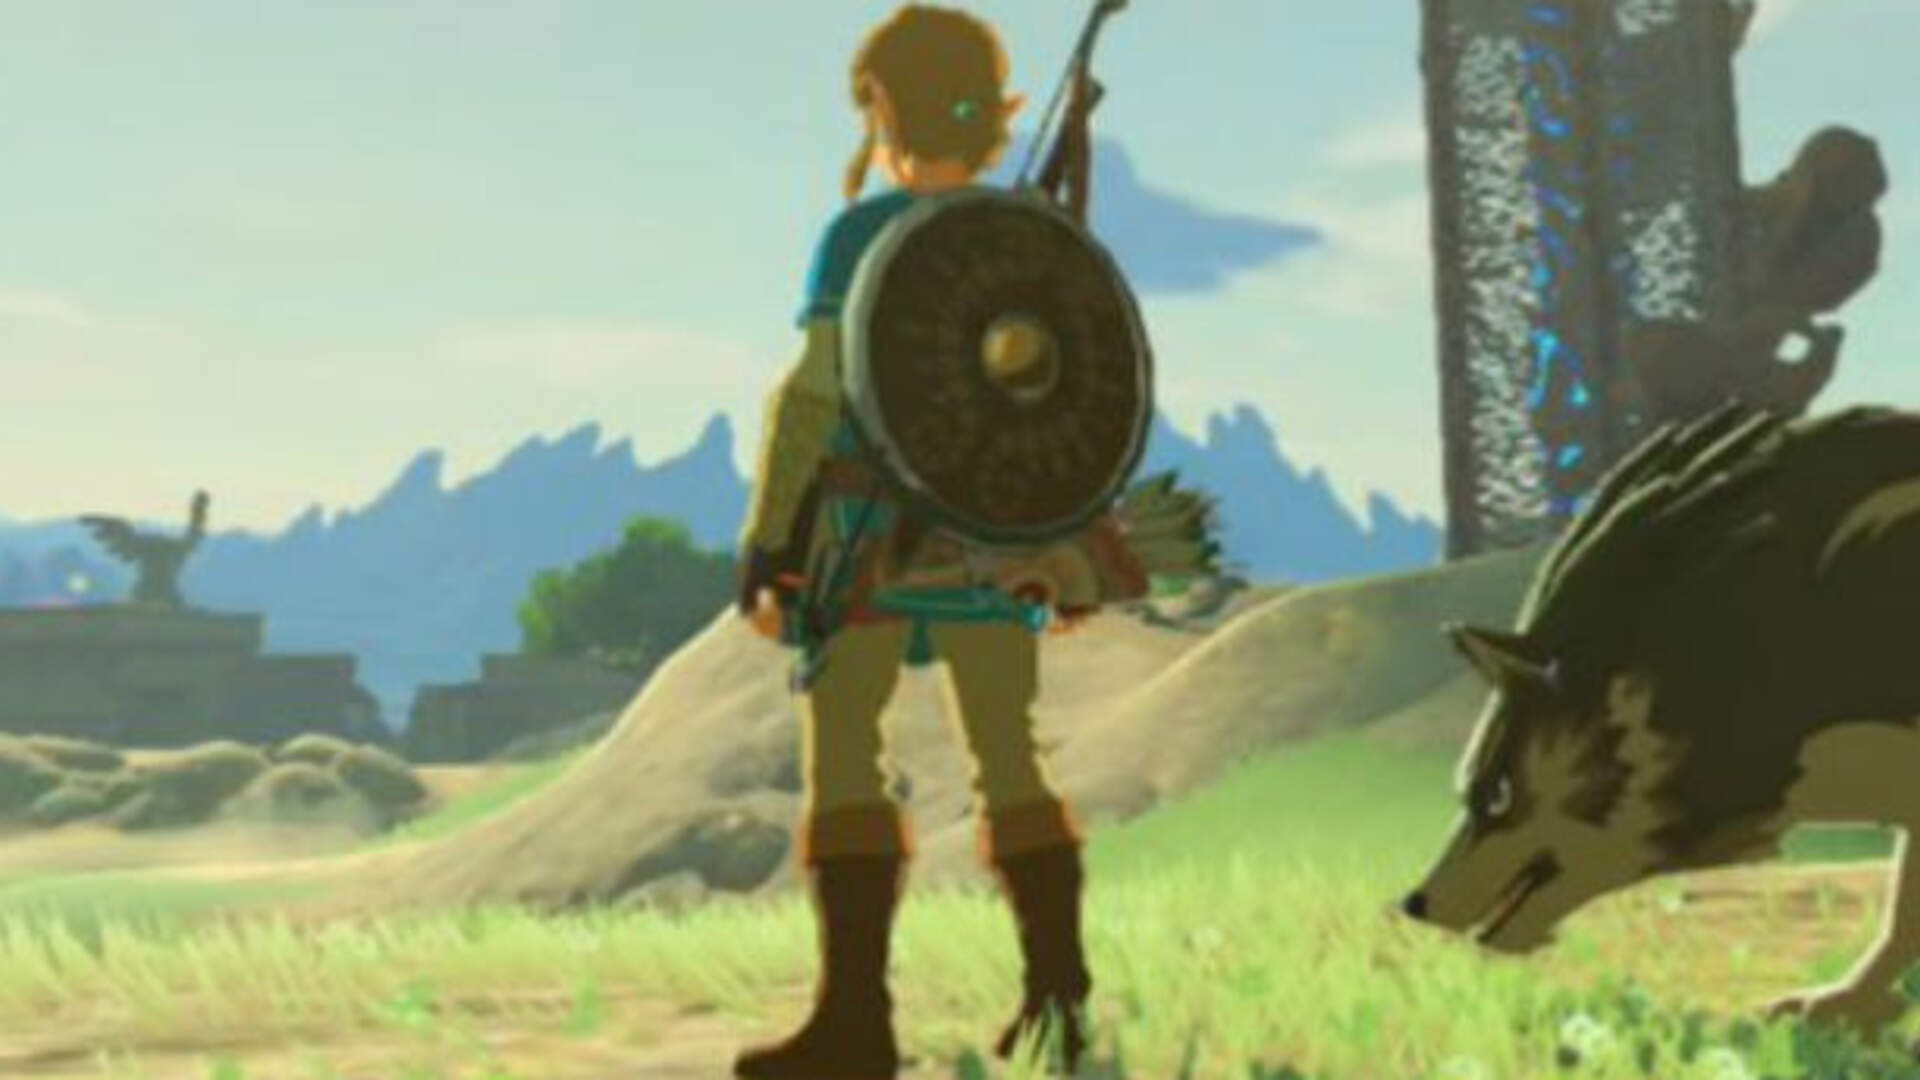 The Zelda Timeline Never Meant Much, and Eiji Aonuma's Latest Breath of the Wild Comments Prove It